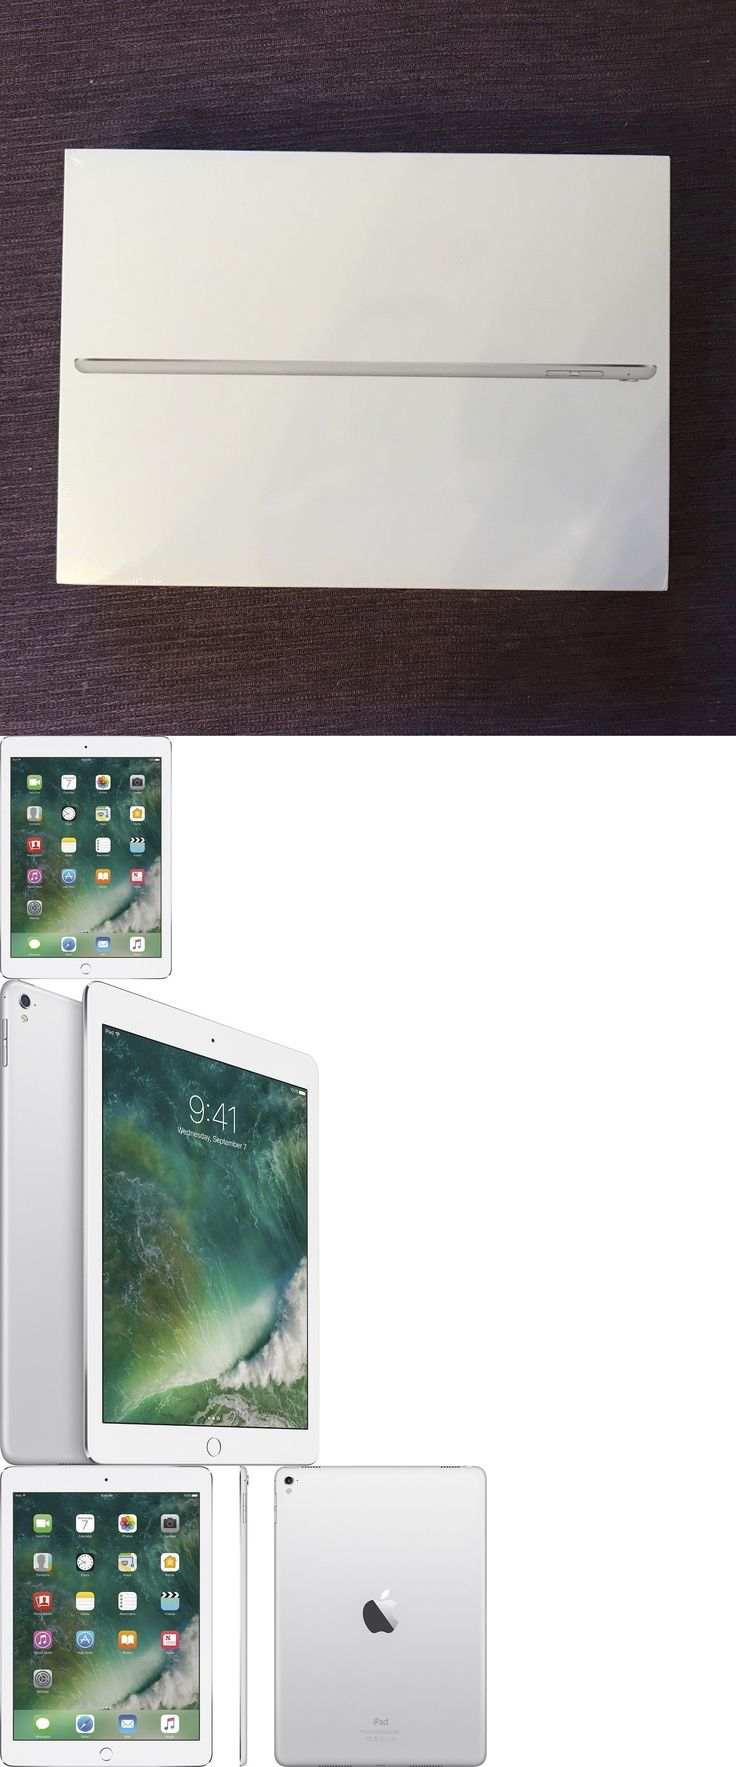 Computers Tablets Networking: New Apple Ipad Pro 9.7-Inch With Wifi 32Gb Mlmp2ll A, Silver (2016 Model) -> BUY IT NOW ONLY: $456.88 on eBay!